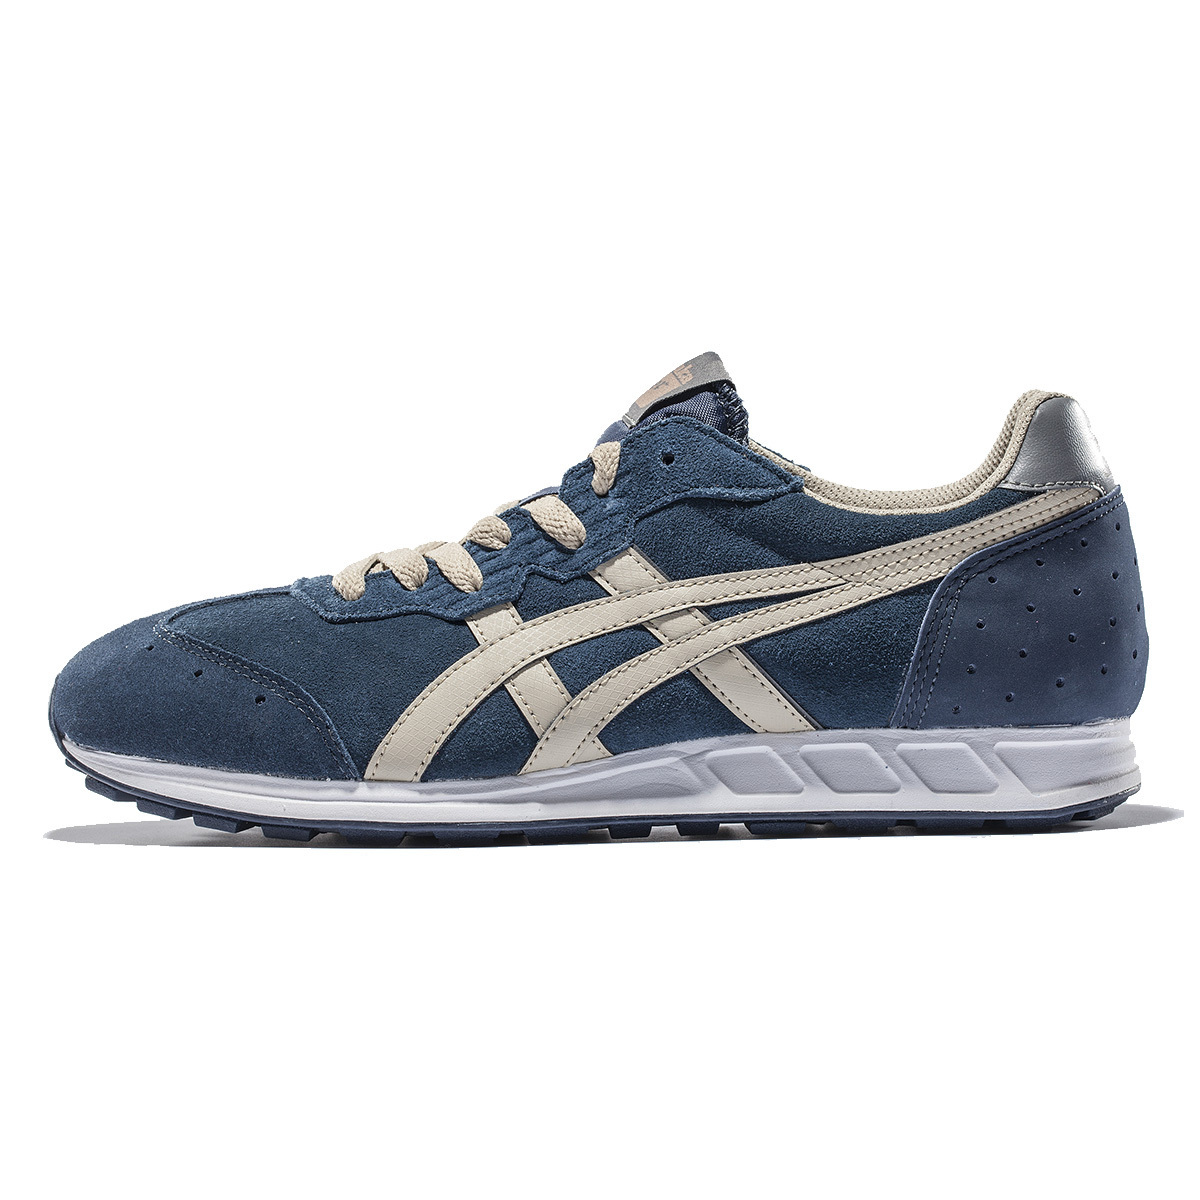 Onitsuka Tiger onitsuka Tiger casual shoes asics men's shoes T-STORMER  D430L-5005